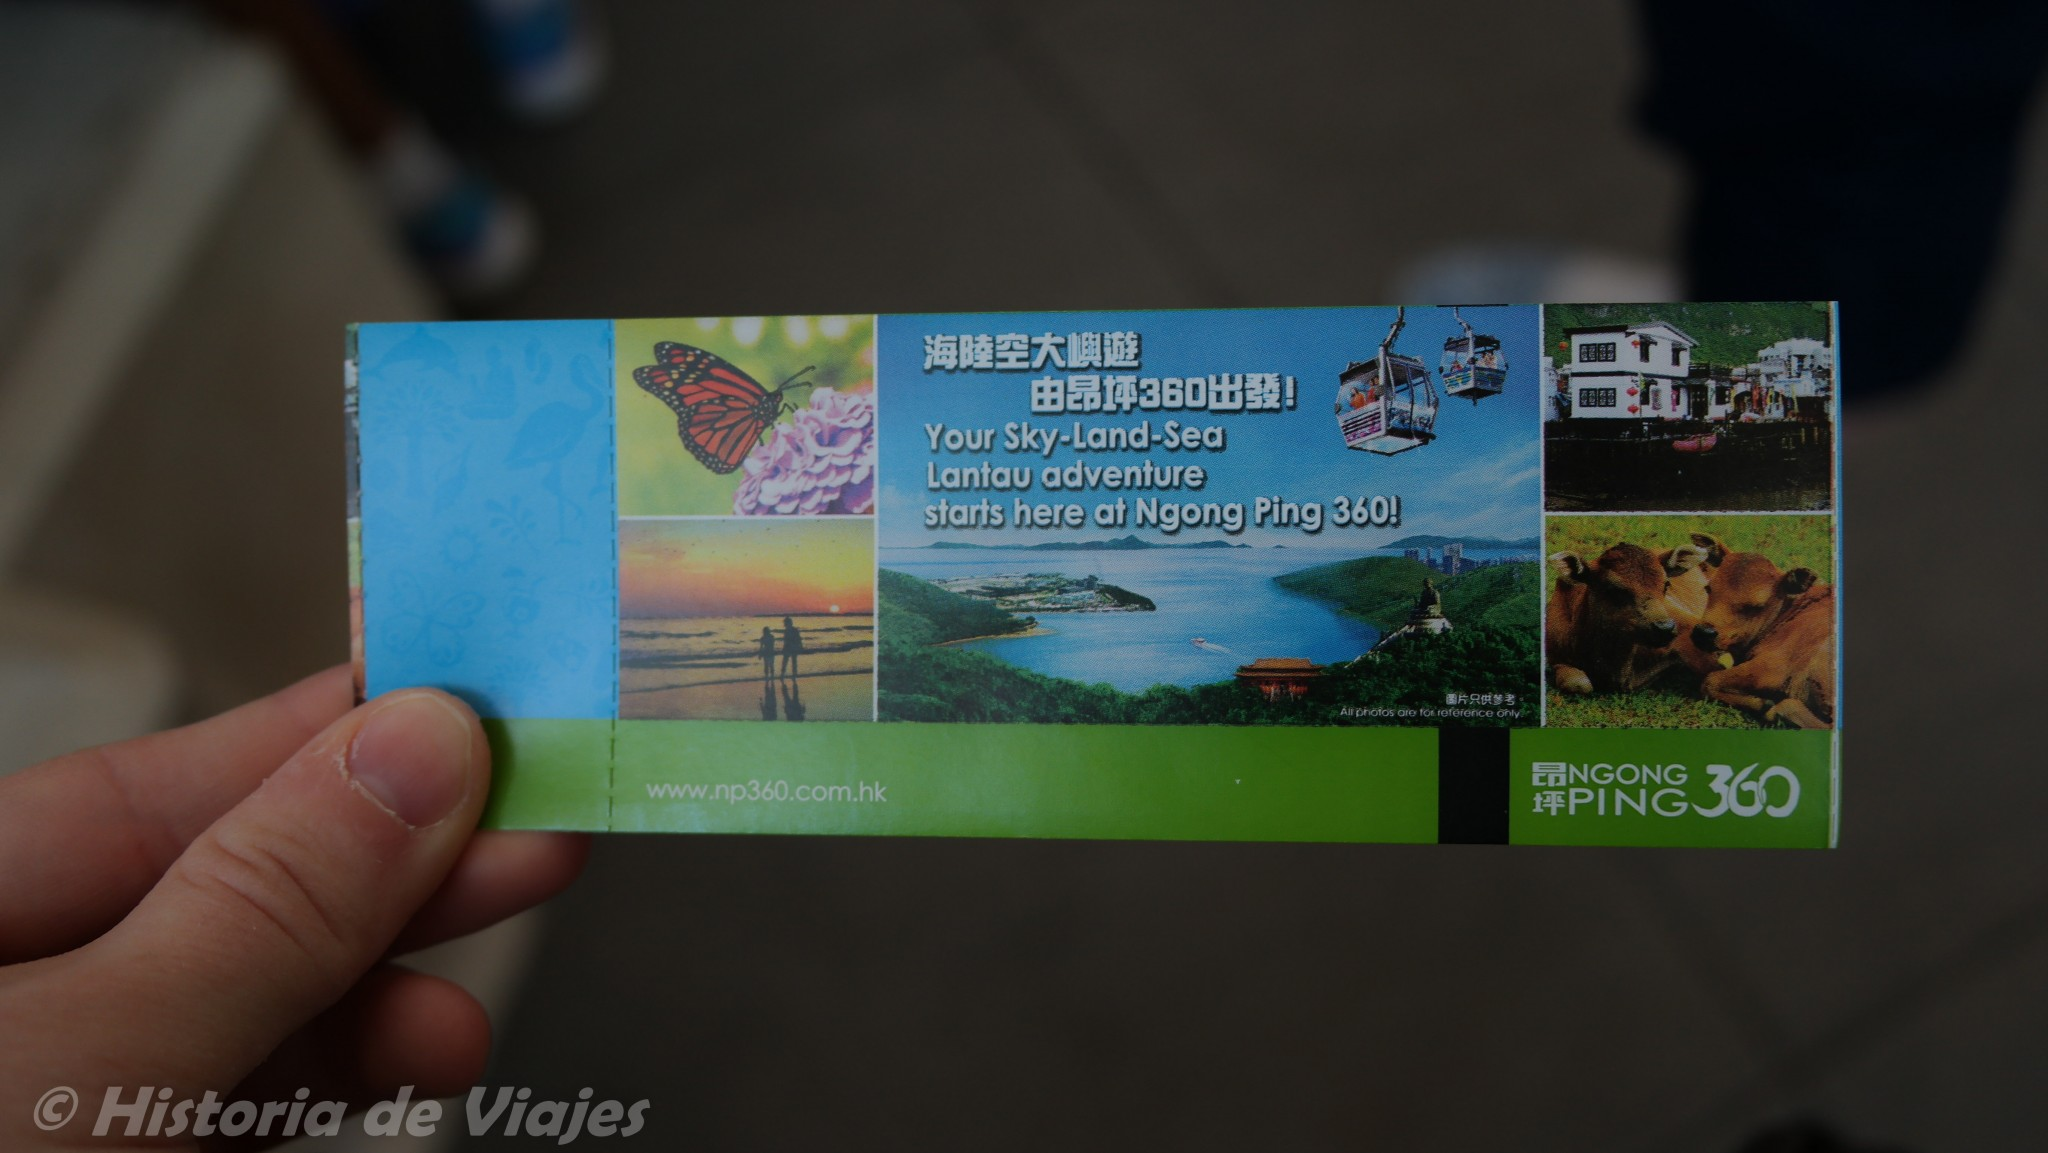 cablecar ticket